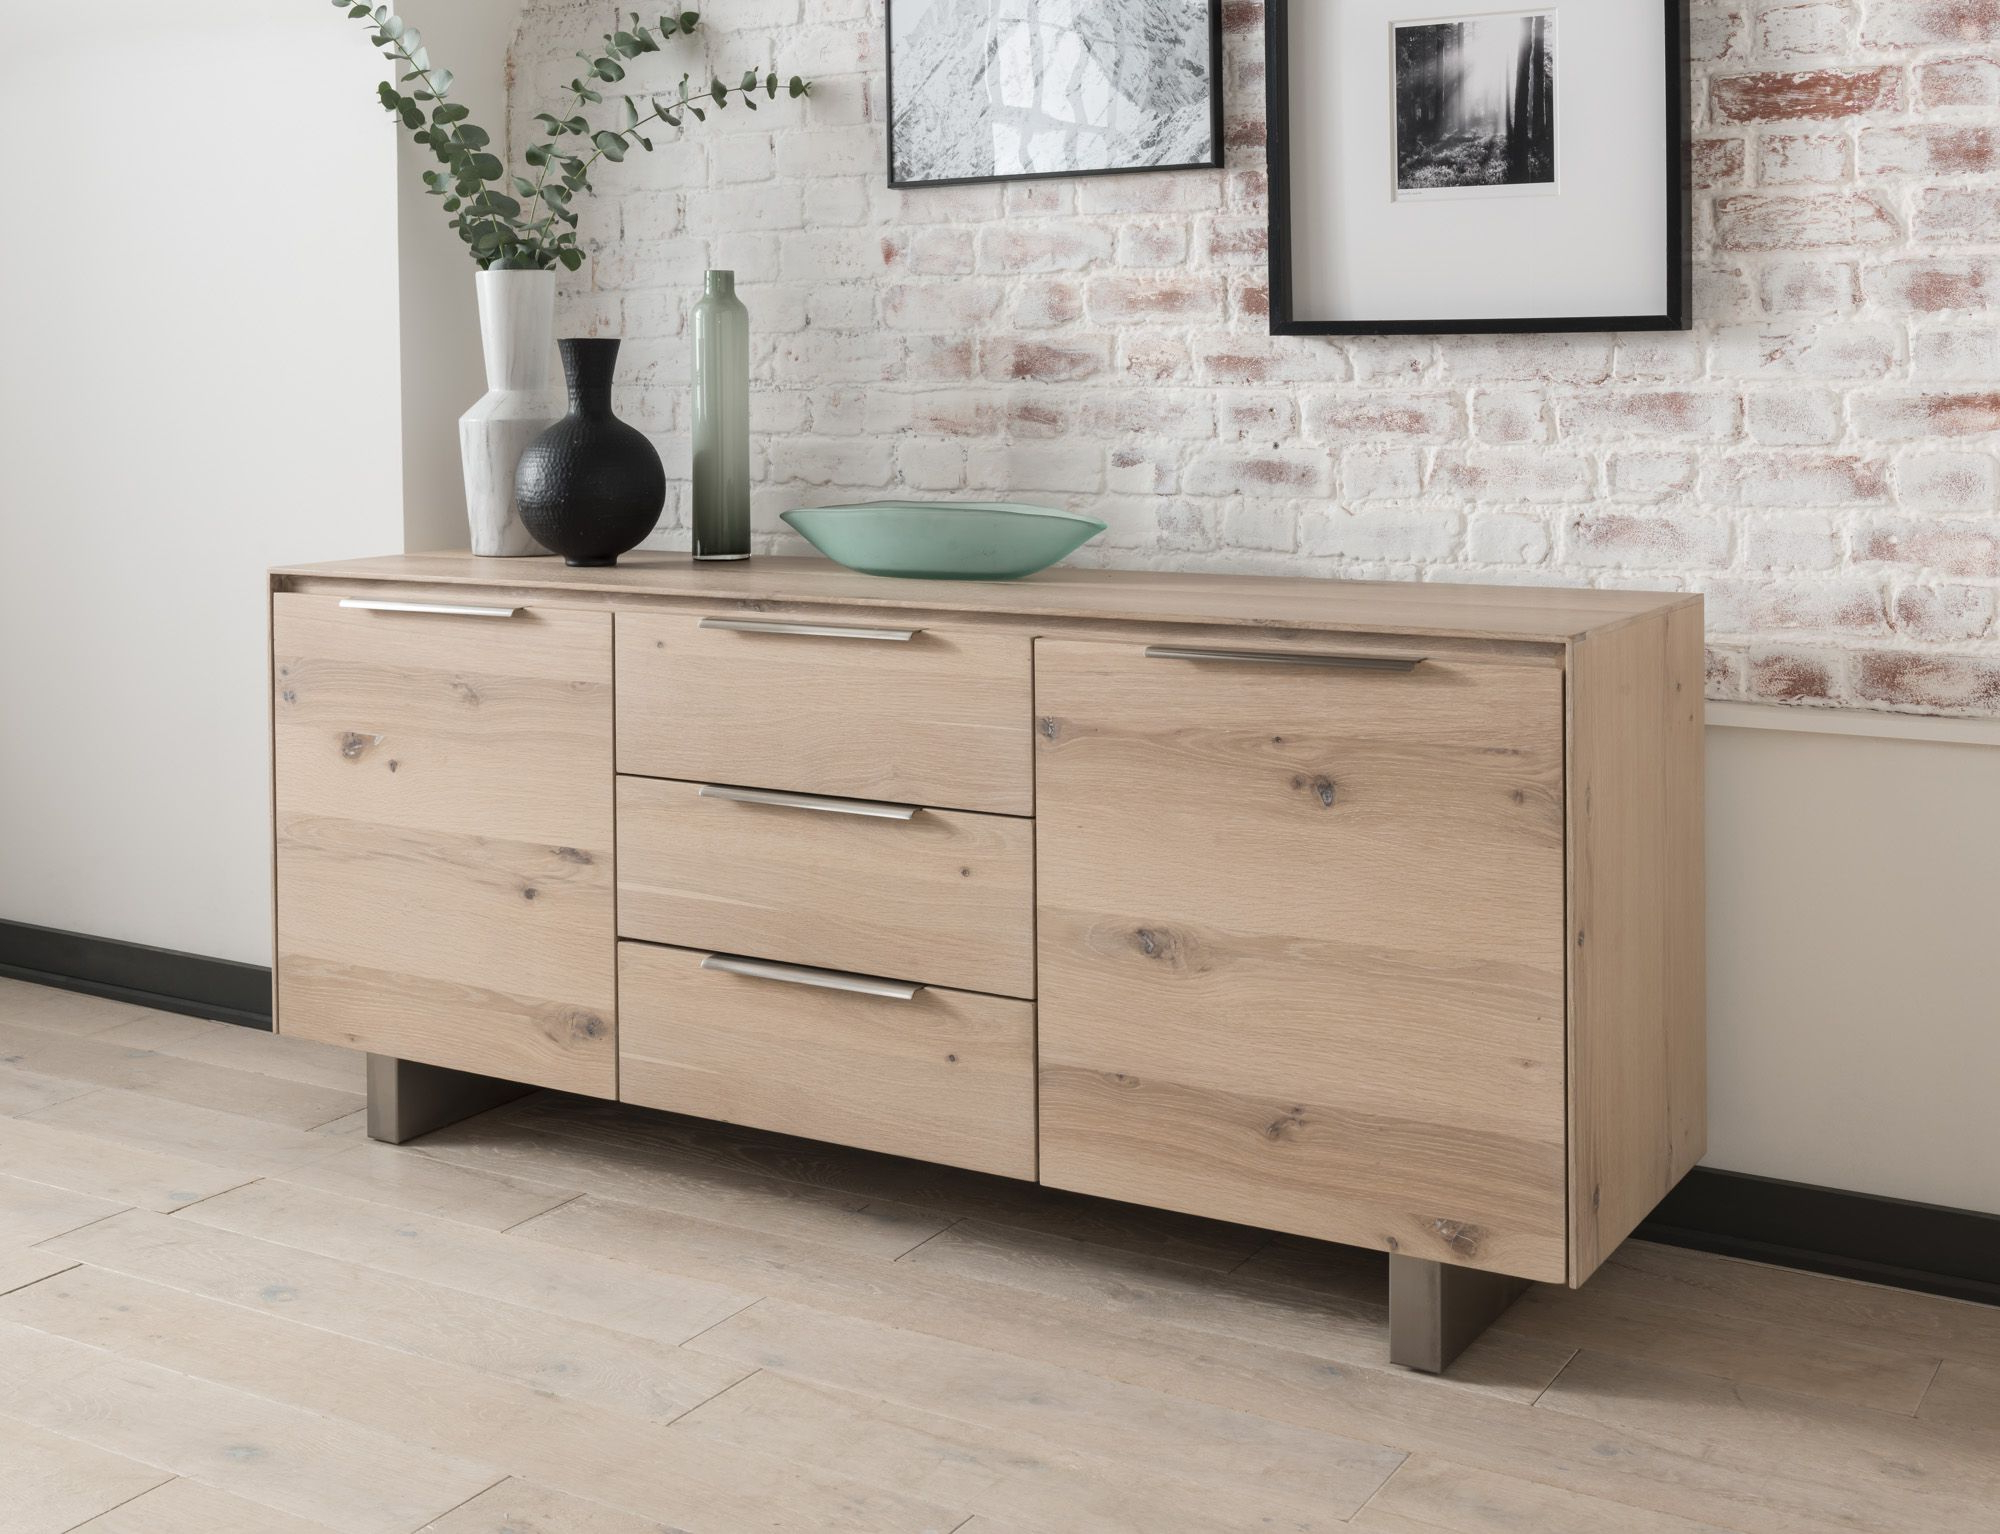 Capua White Washed Oak Sideboard 18Vd175 Throughout Trendy 3 Drawer/2 Door White Wash Sideboards (Gallery 12 of 20)